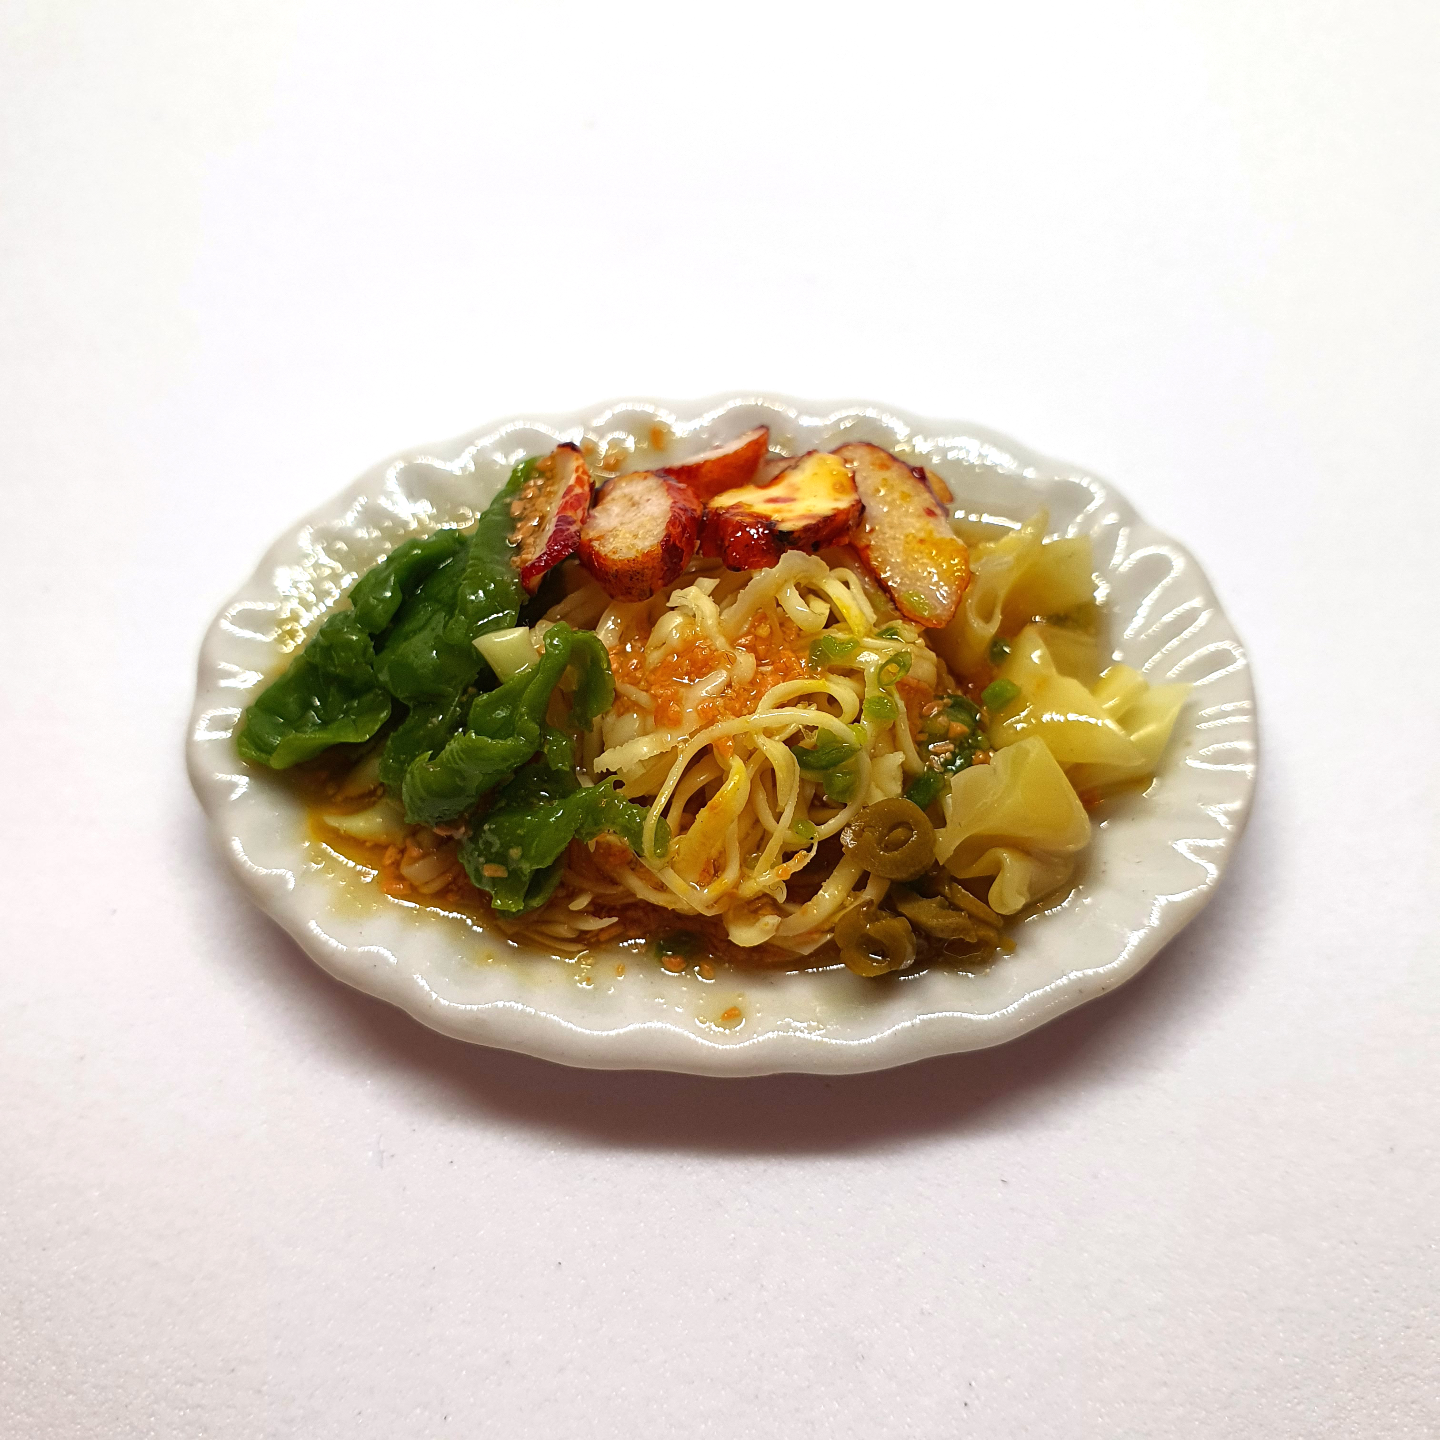 Handmade Miniature: Wanton Noodles by Madam Ang Miniature World